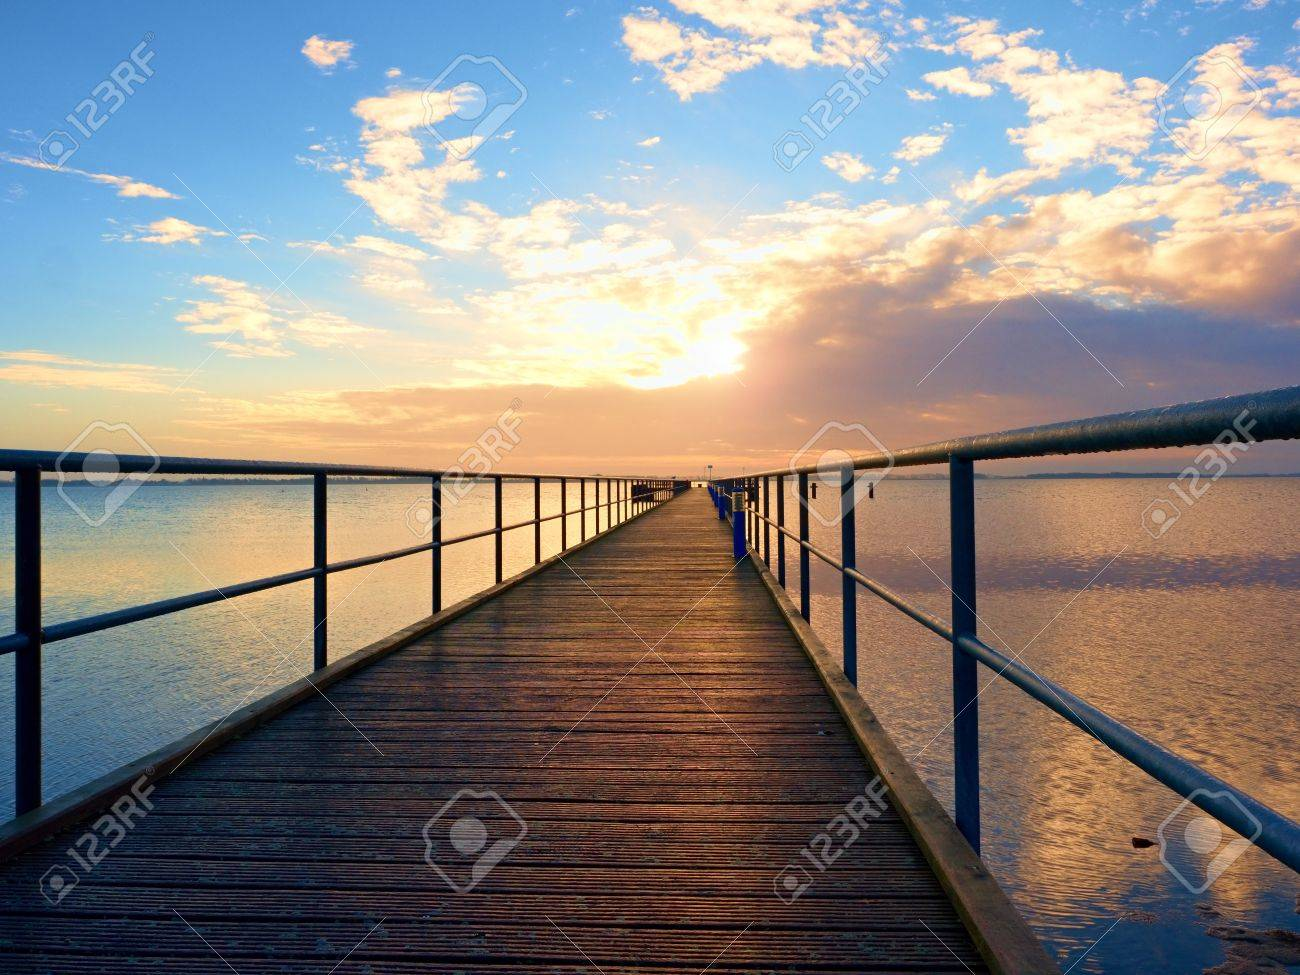 Morning in harbor. Touristic mole, wet pier construction above sea. Sunny clear blue sky, smooth water level - 68079597